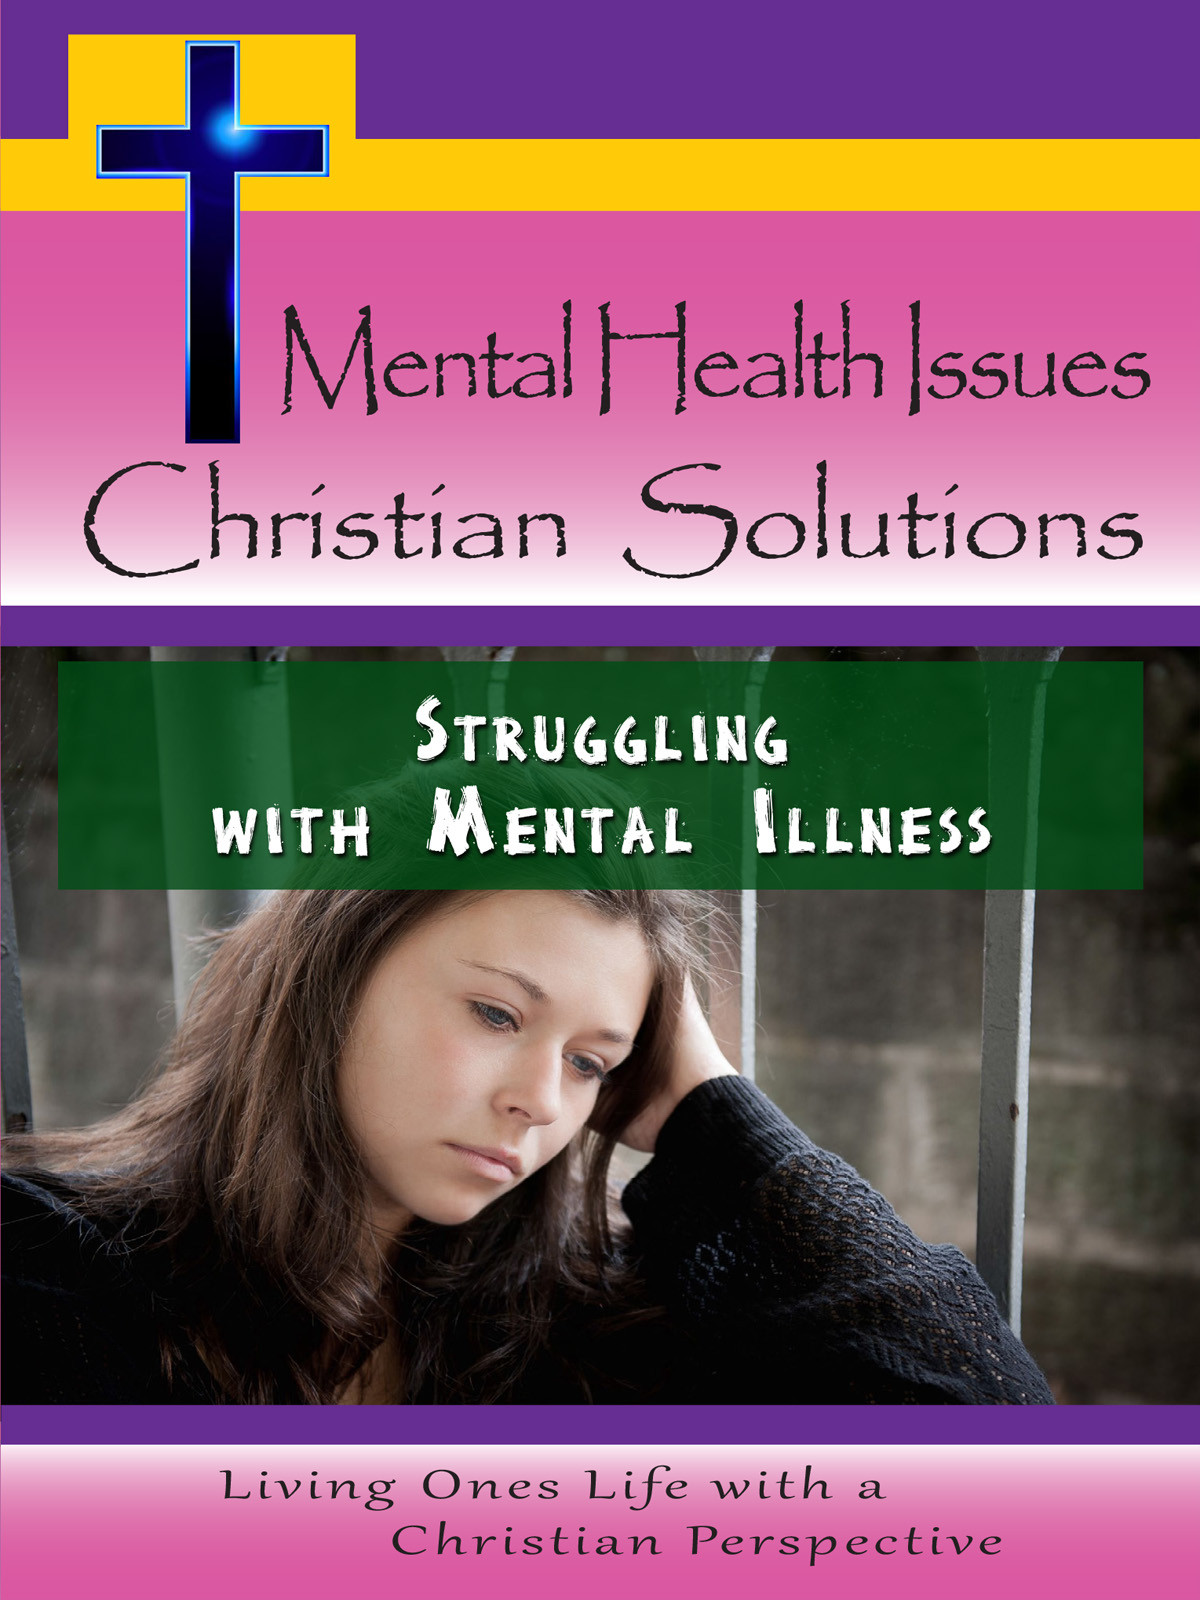 CH10008 - Struggling with Mental Illness